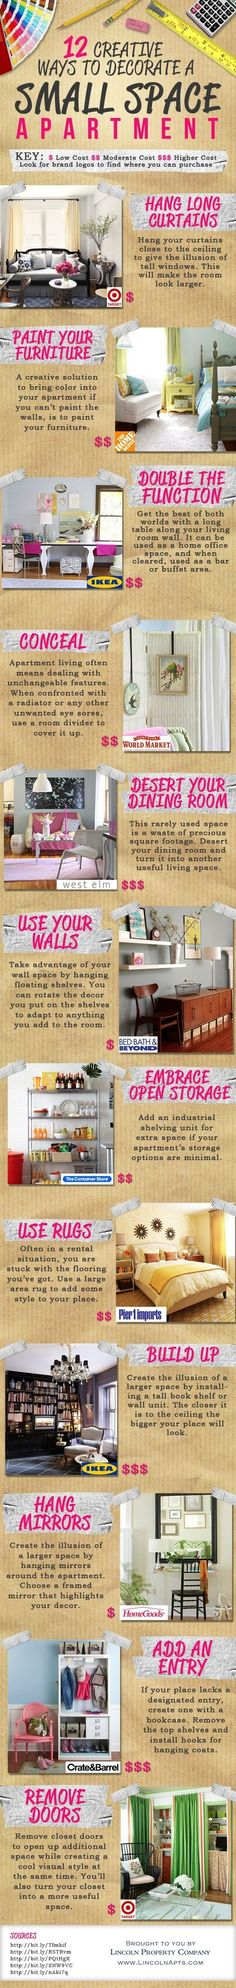 12 creative ways to decorate a small space apartment